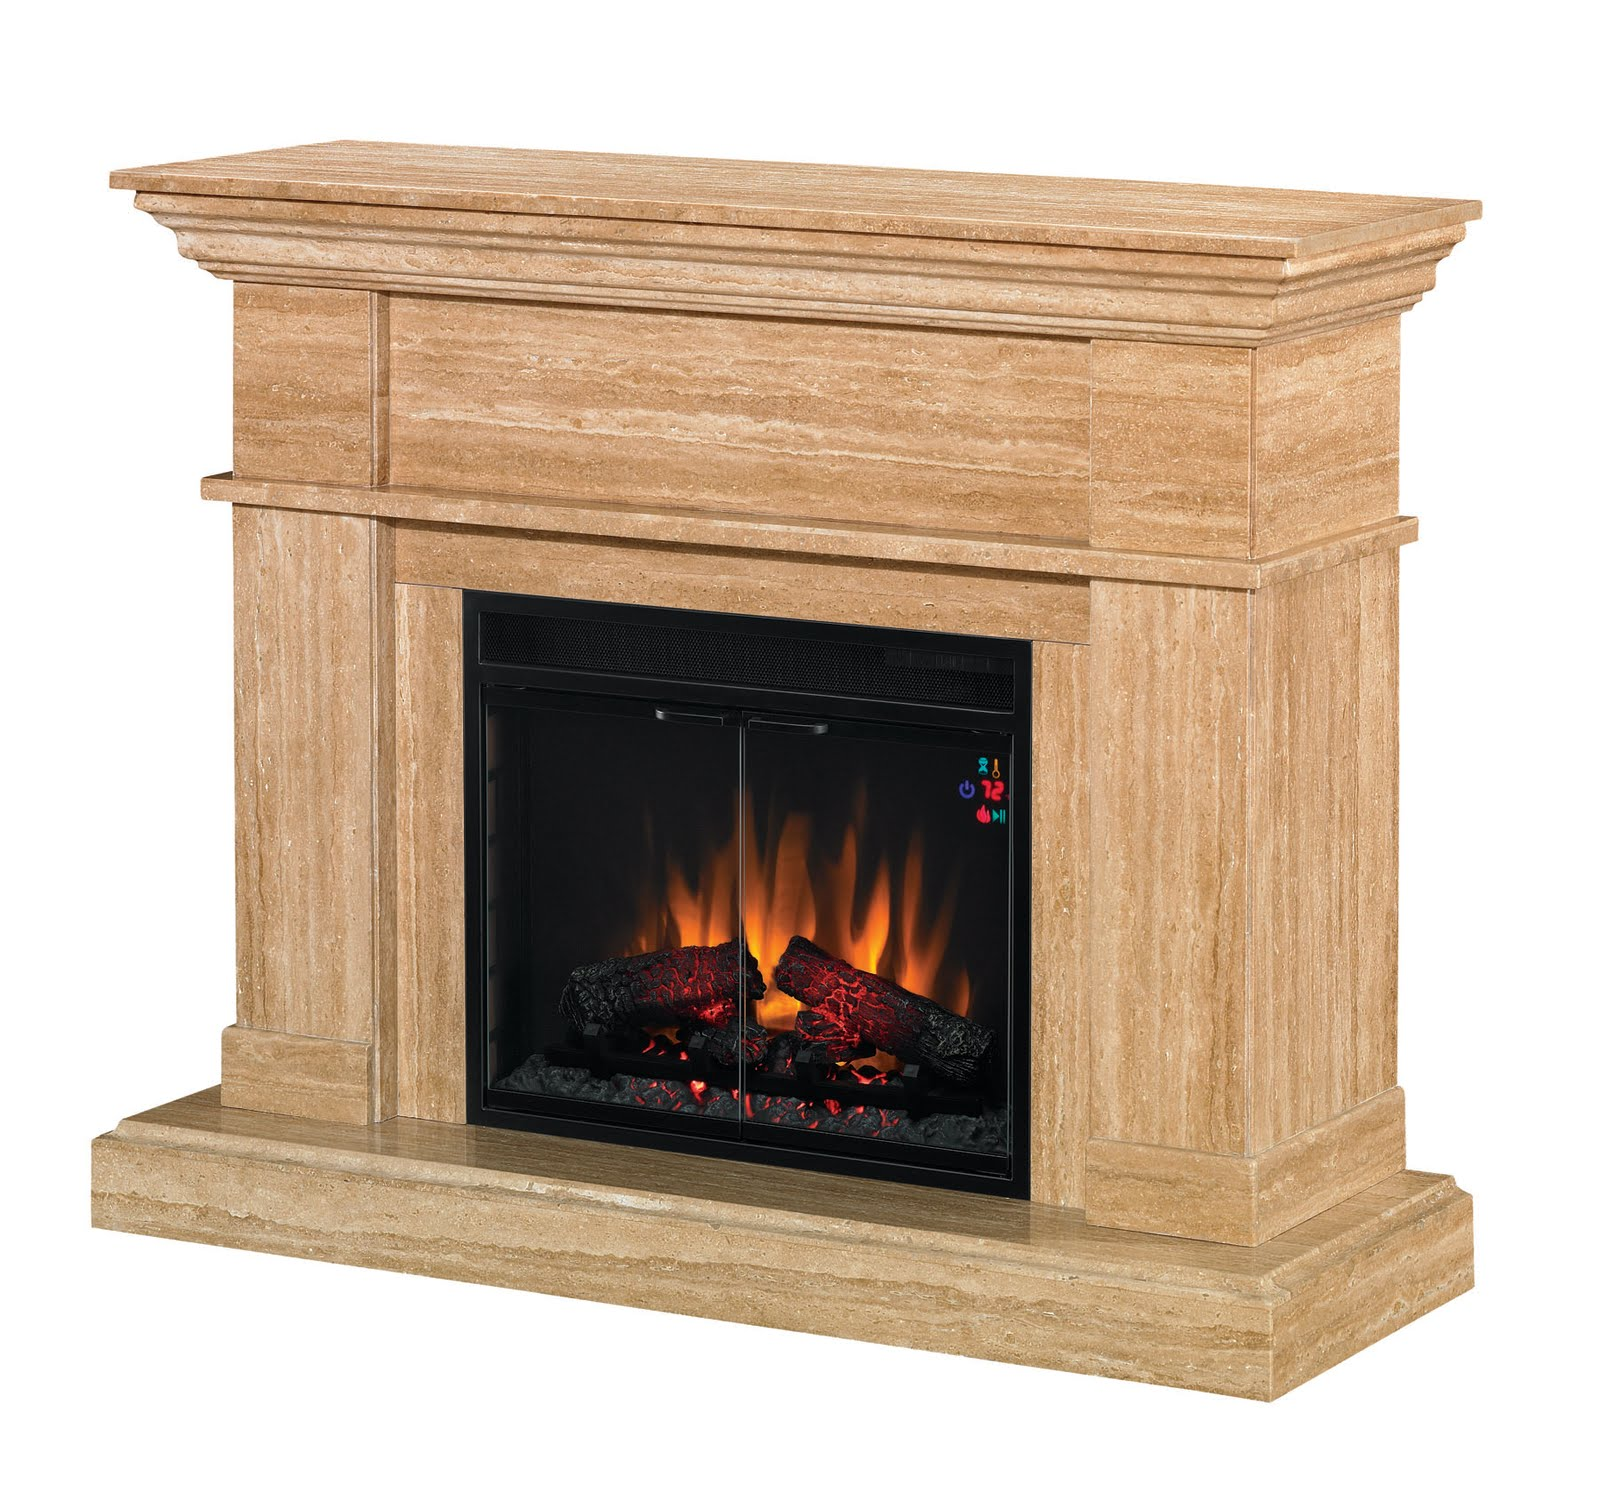 Outdoor Gas Fireplace Insert